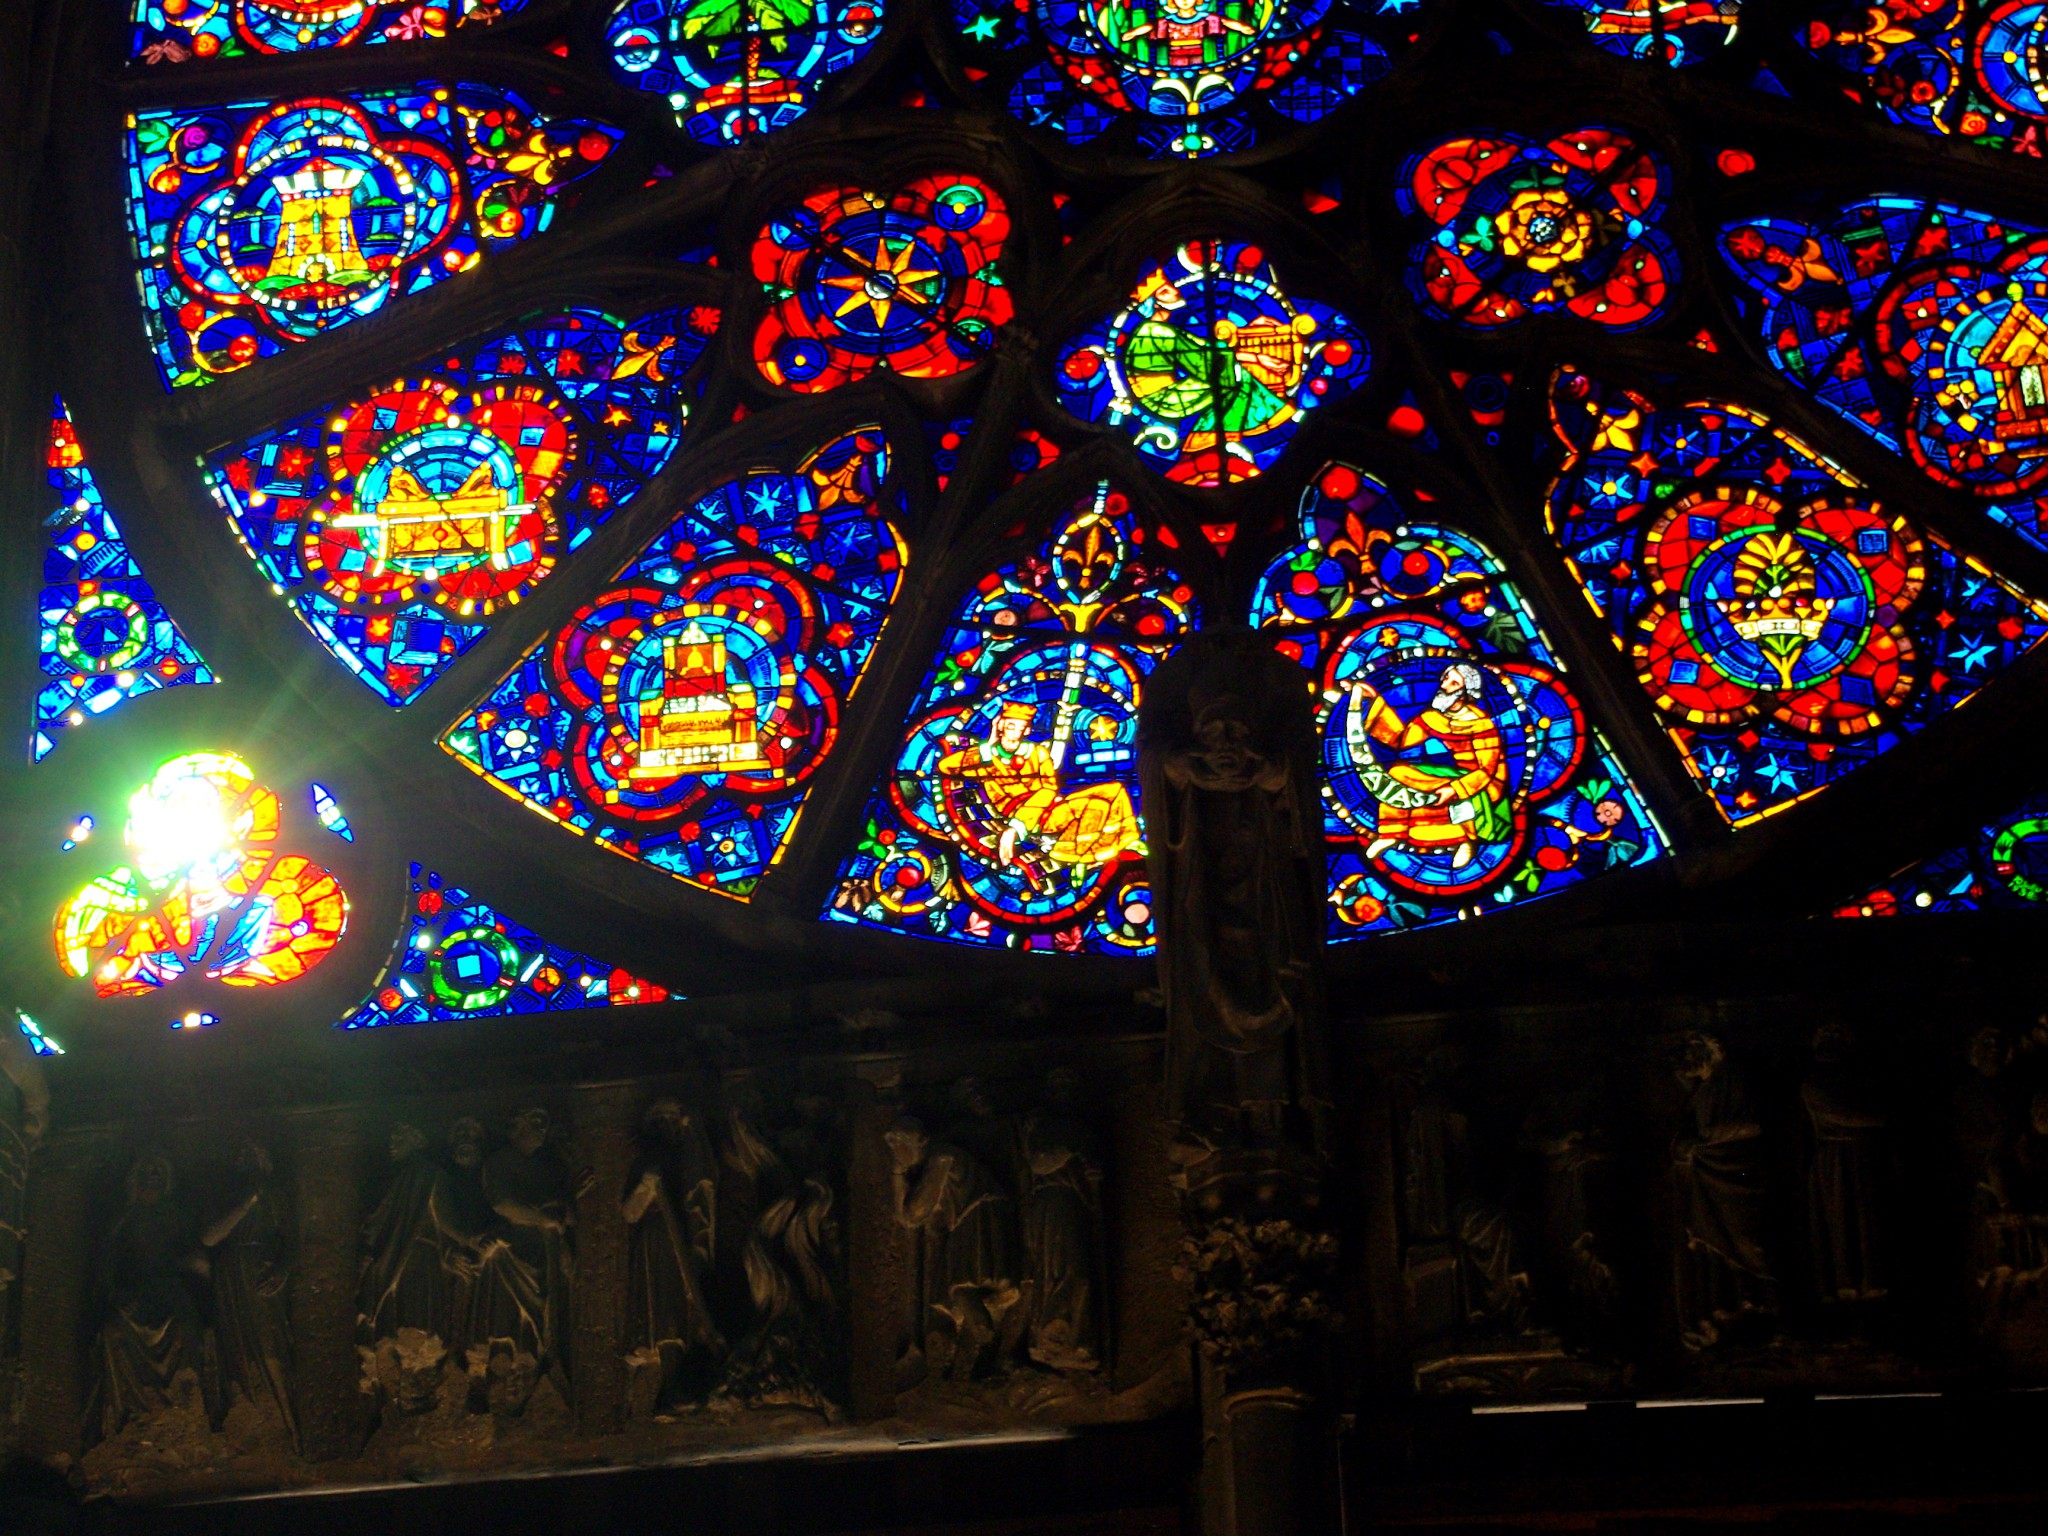 Details of a rose window © French Moments